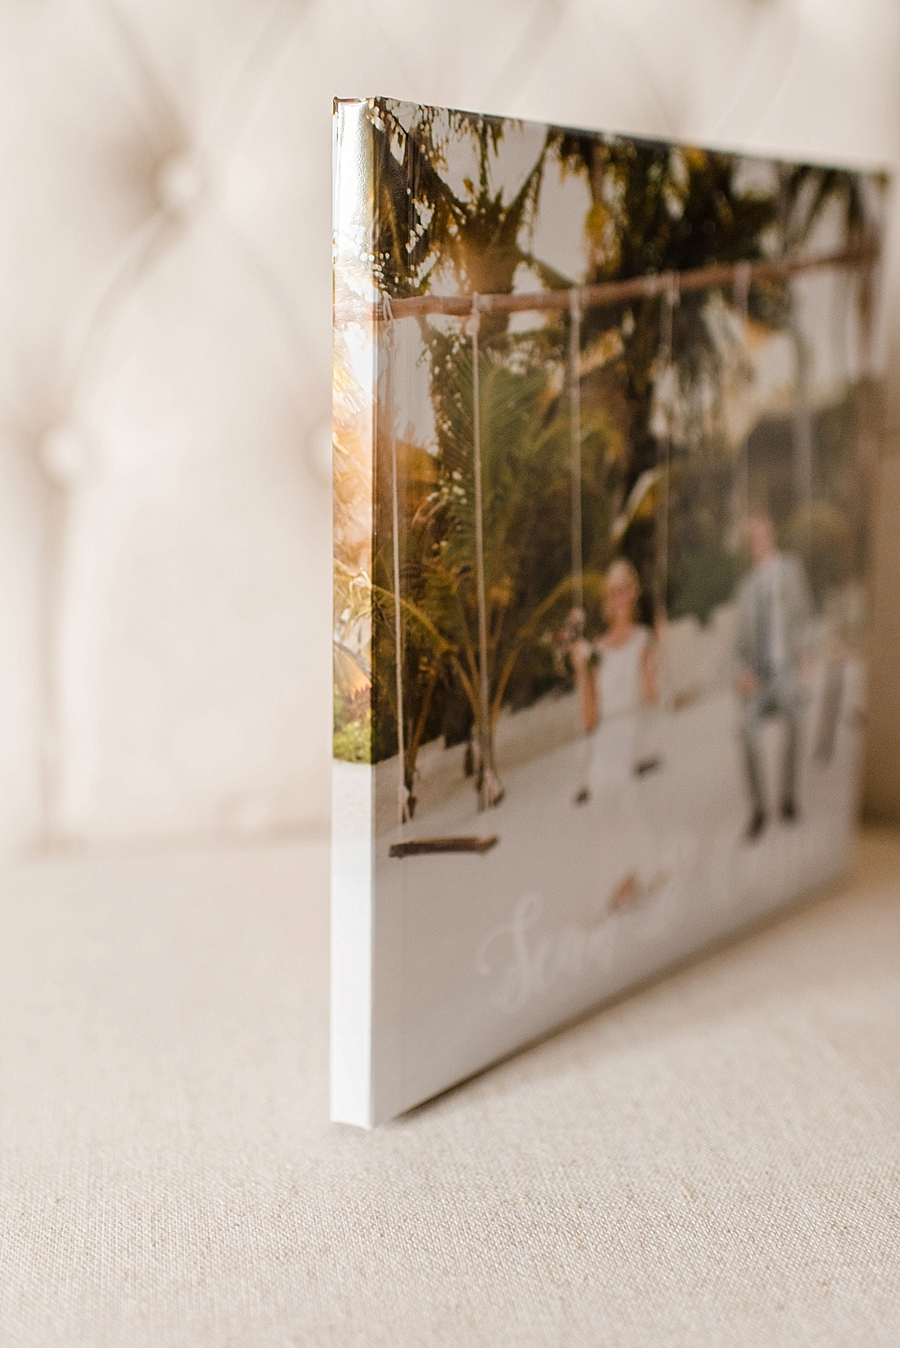 The thinner spine and press-printing put the parent album at the perfect price point for gifting to parents. Professional printing and custom design means there are no sacrifices in quality.